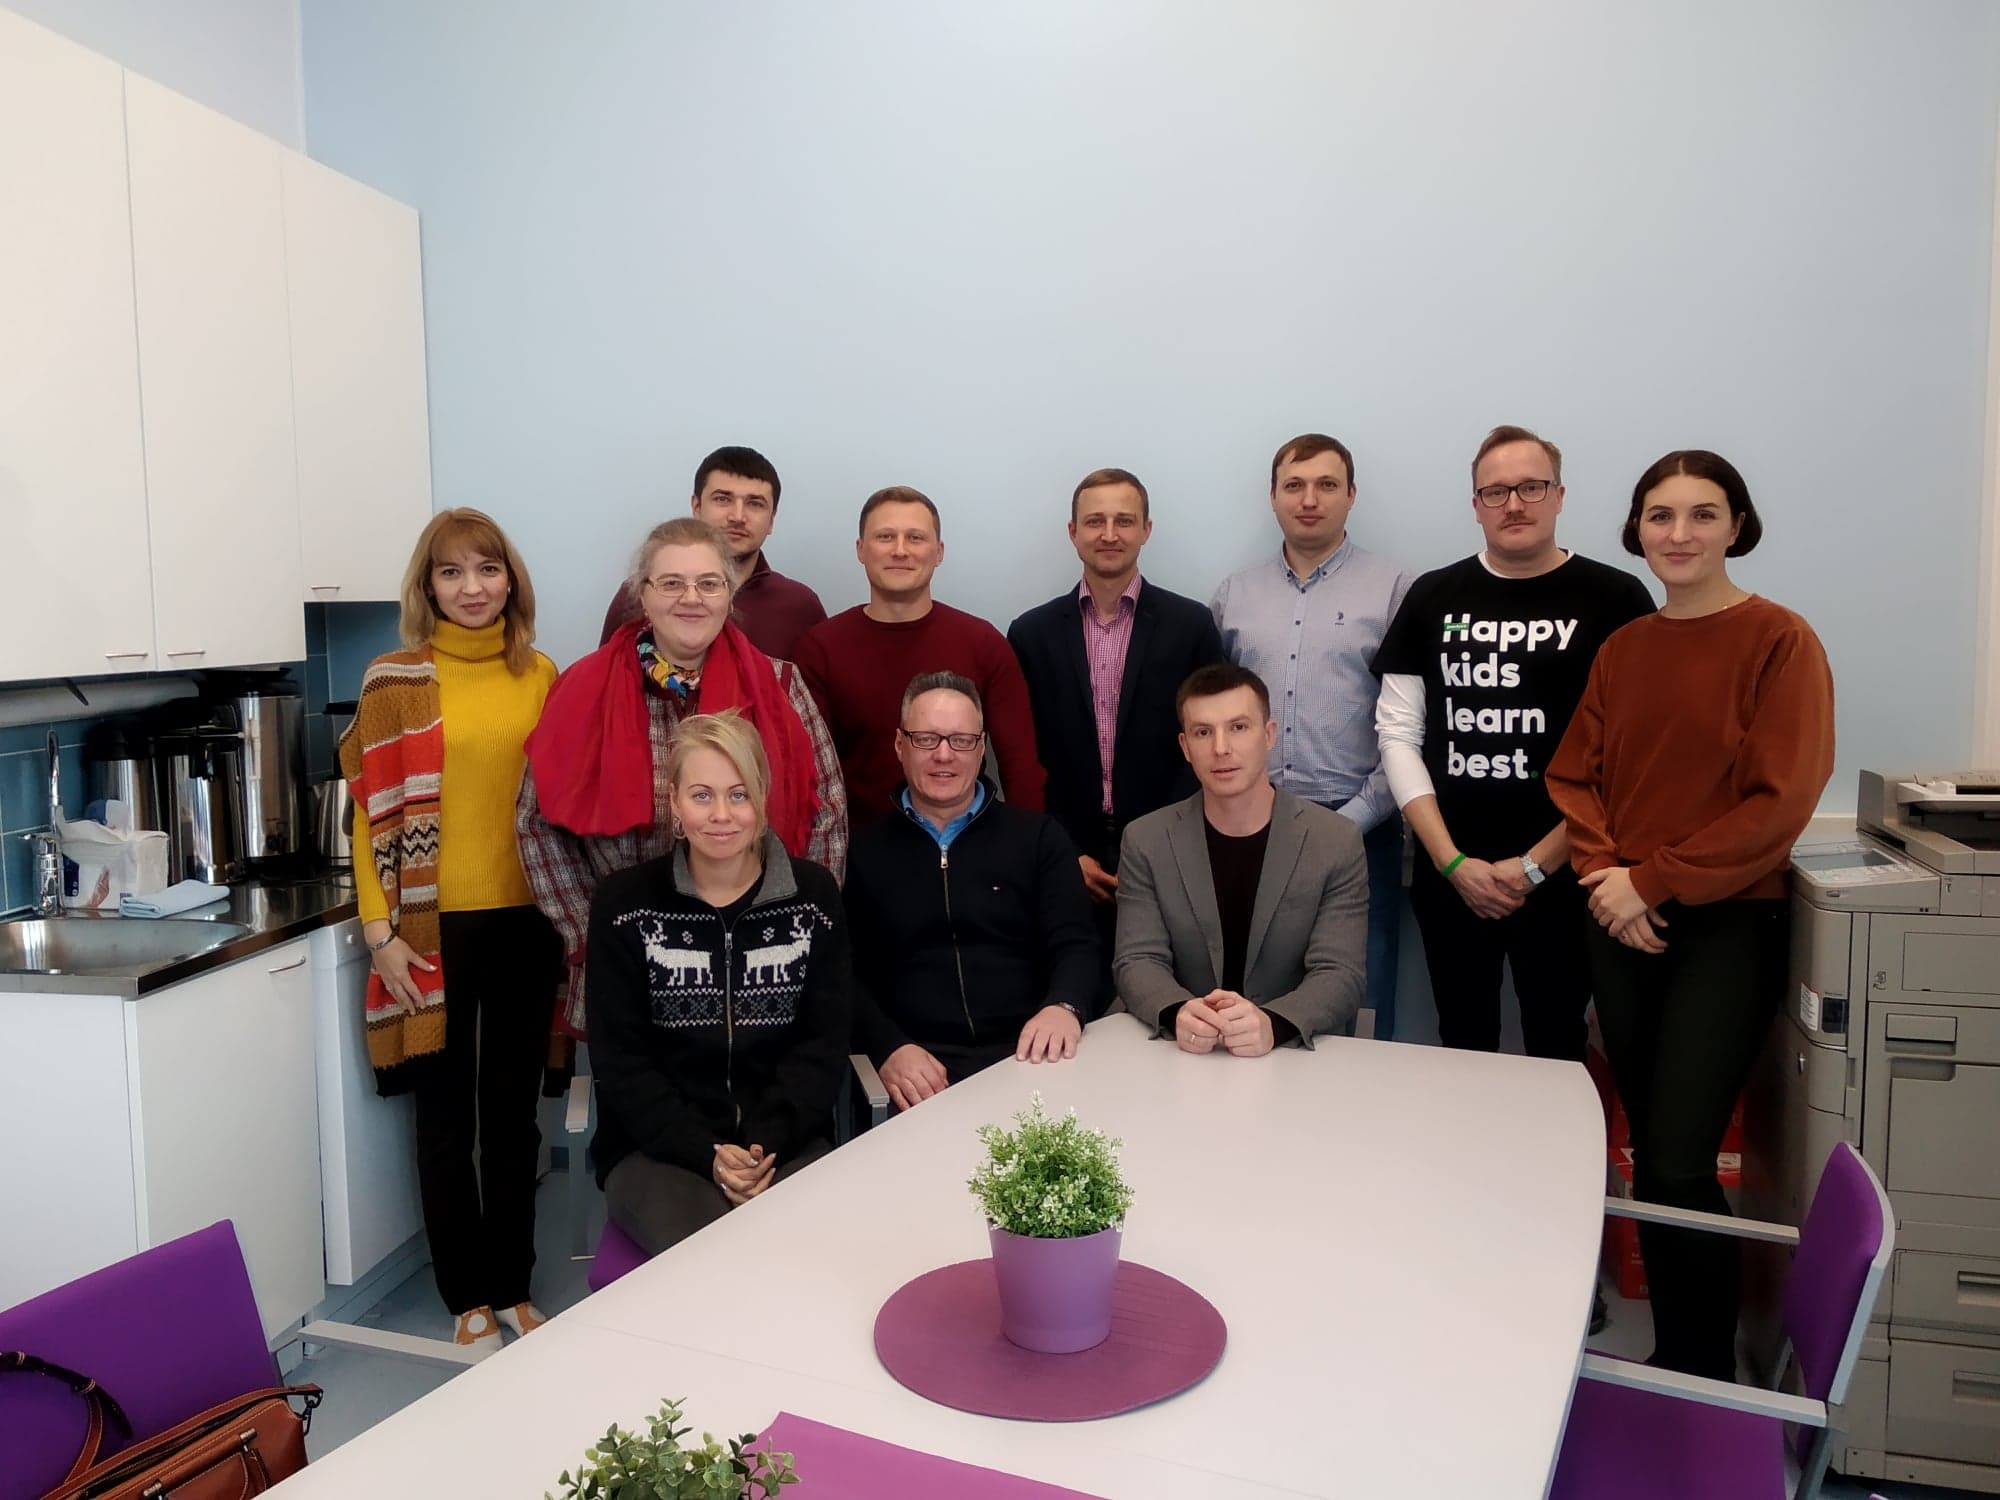 Tampere Expertise Development Center hosts the group of teachers and ICT specialist from Russia